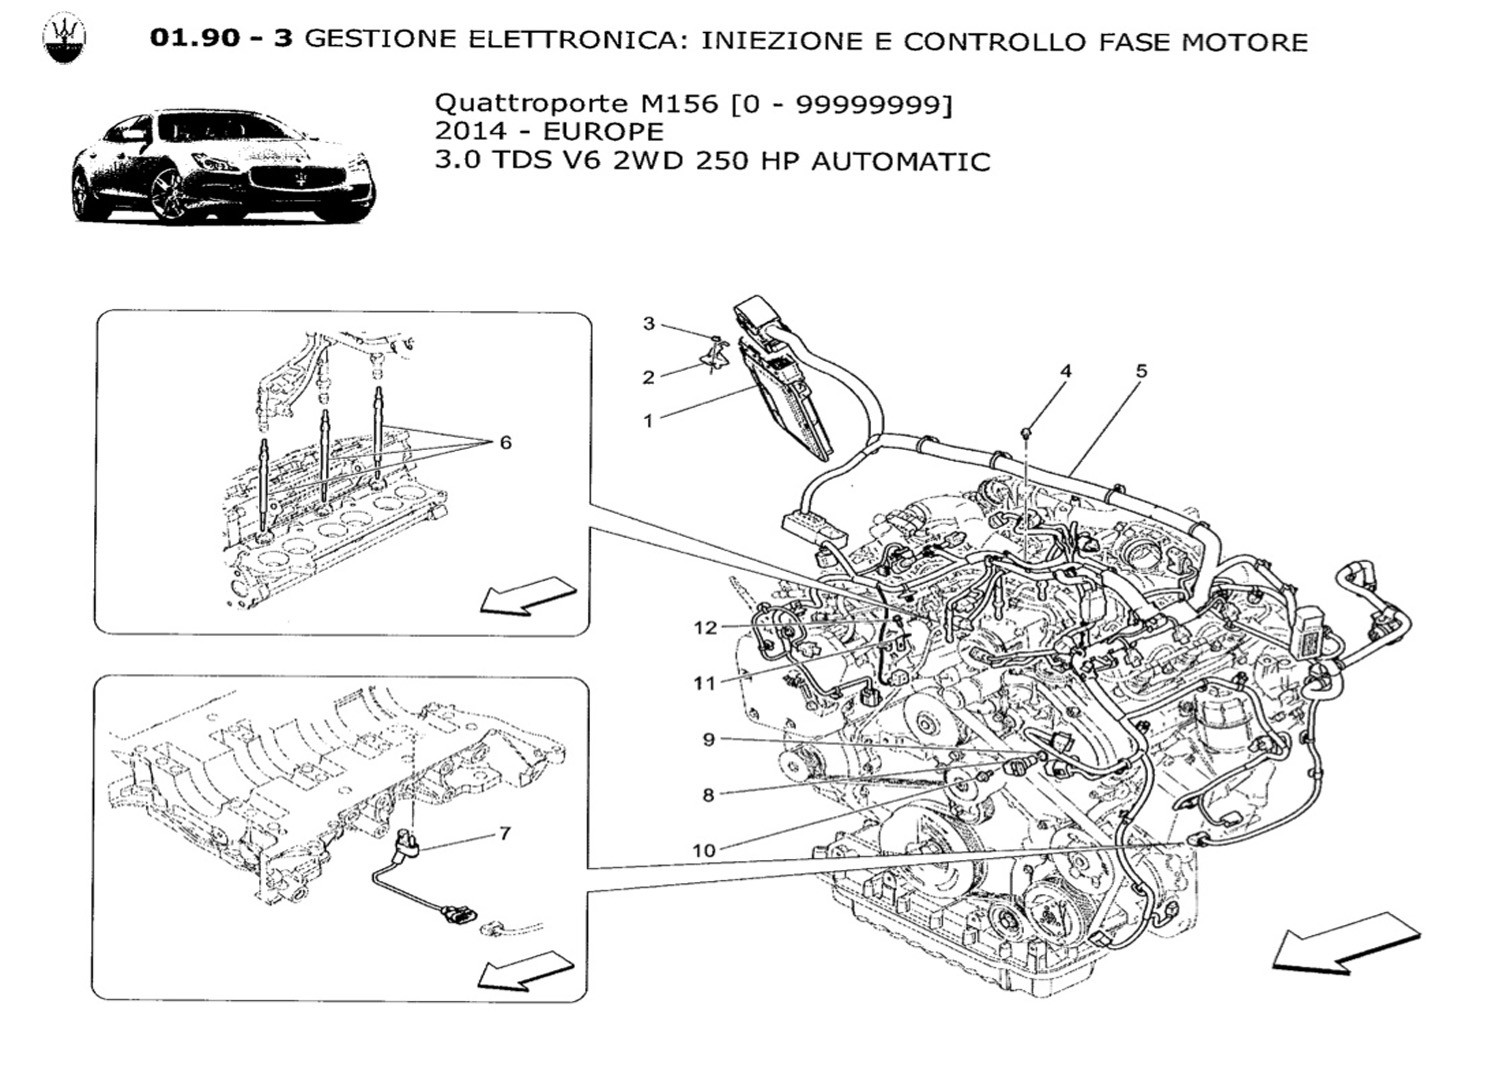 Electronic Control Injection And Engine Timing Control